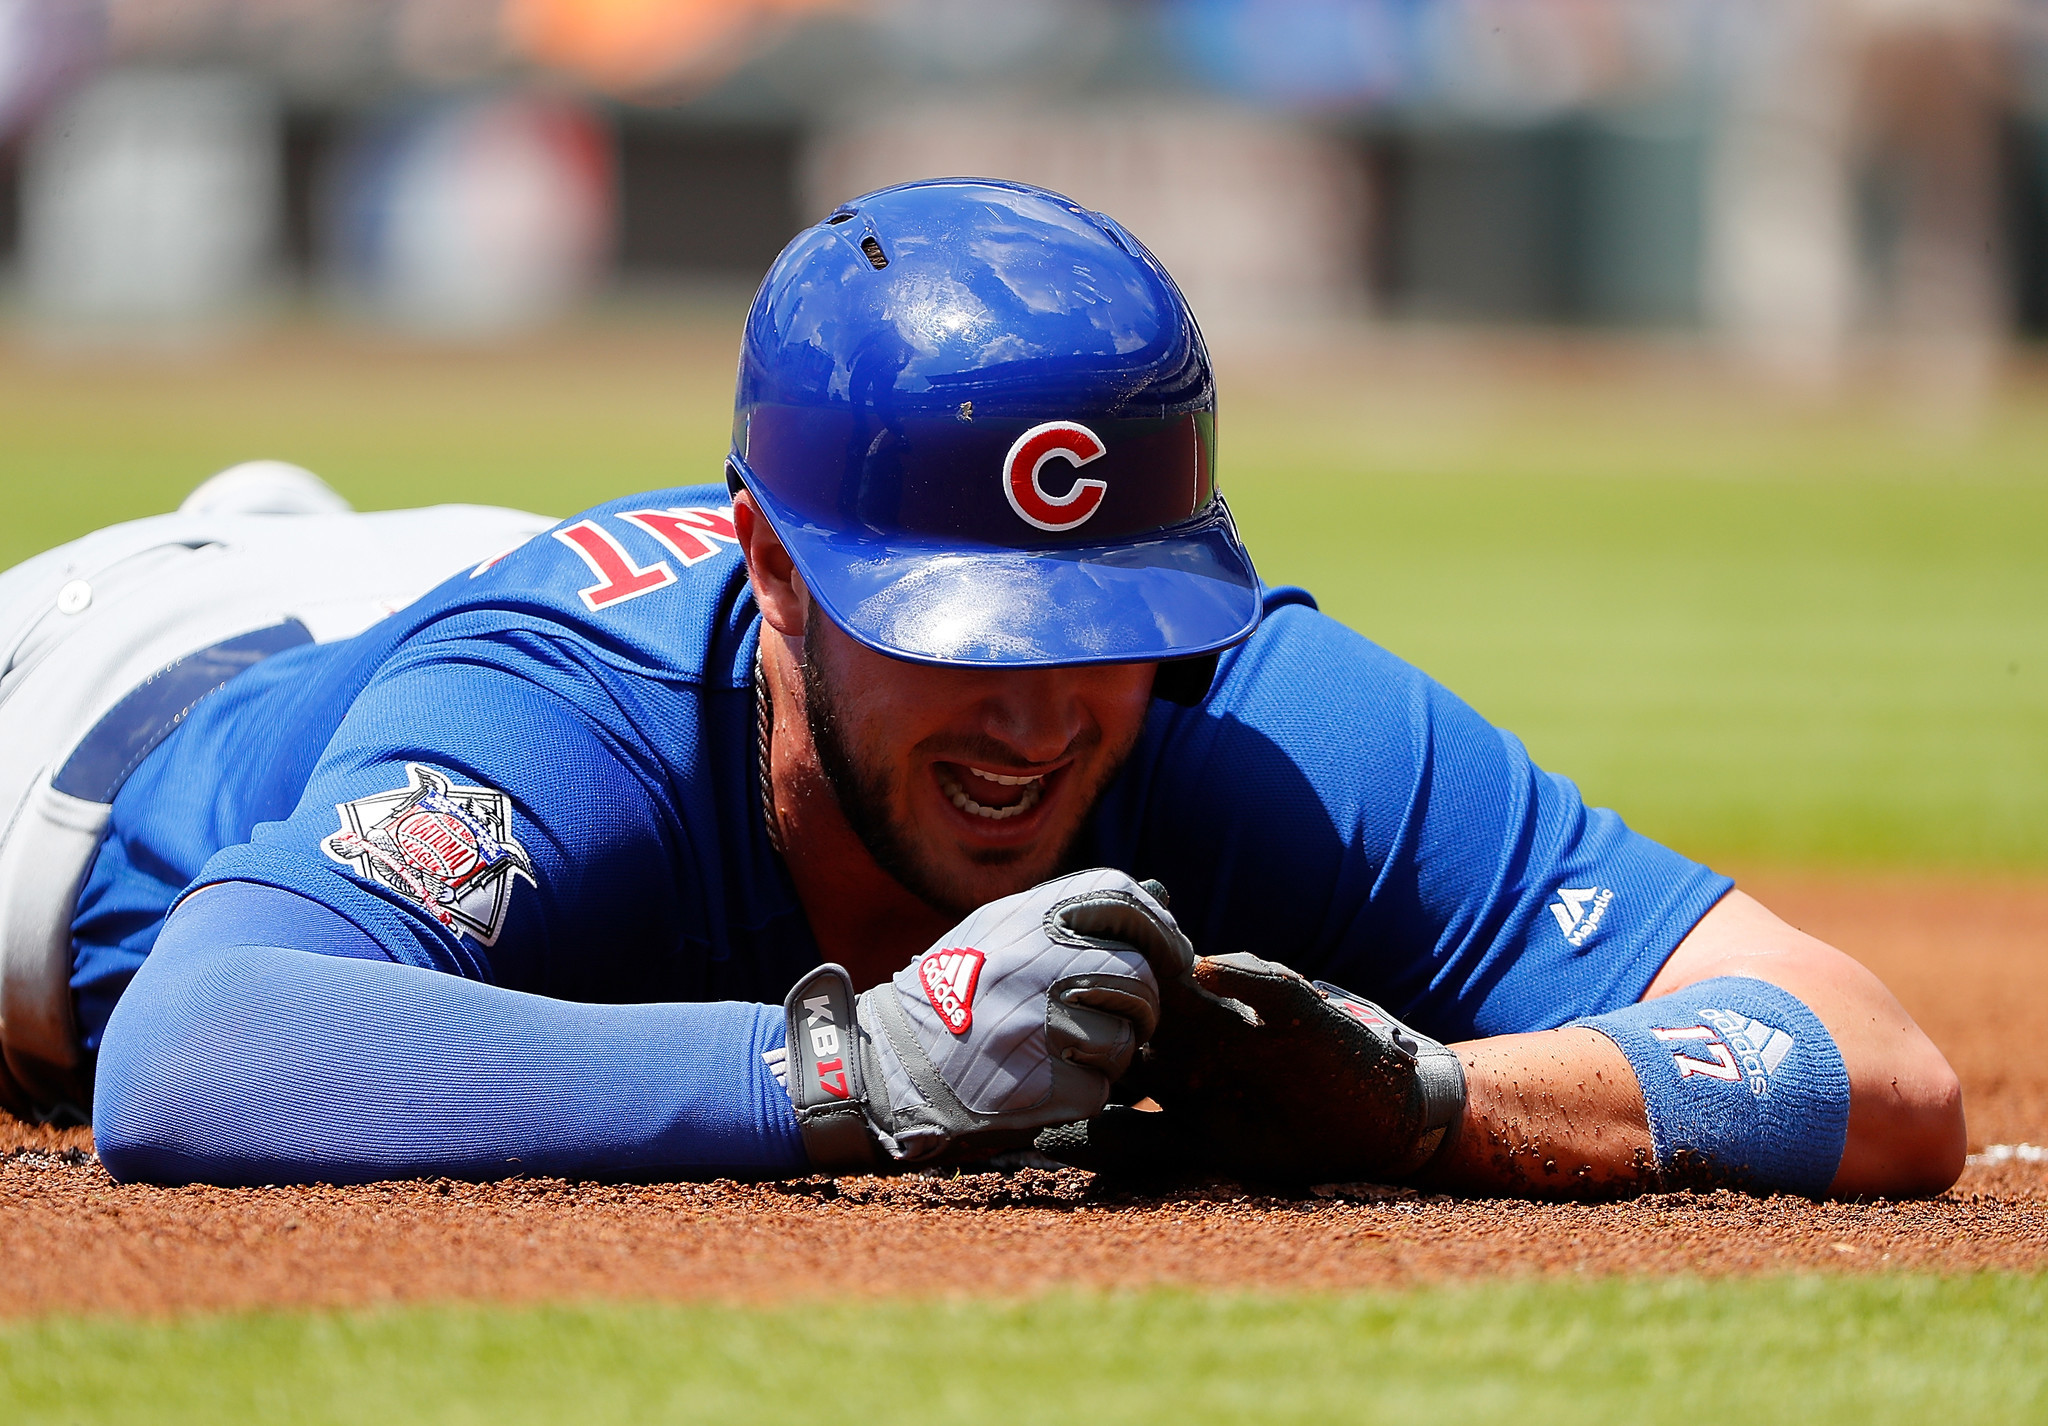 Ct-kris-bryant-stop-sliding-head-first-rosenbloom-20170720